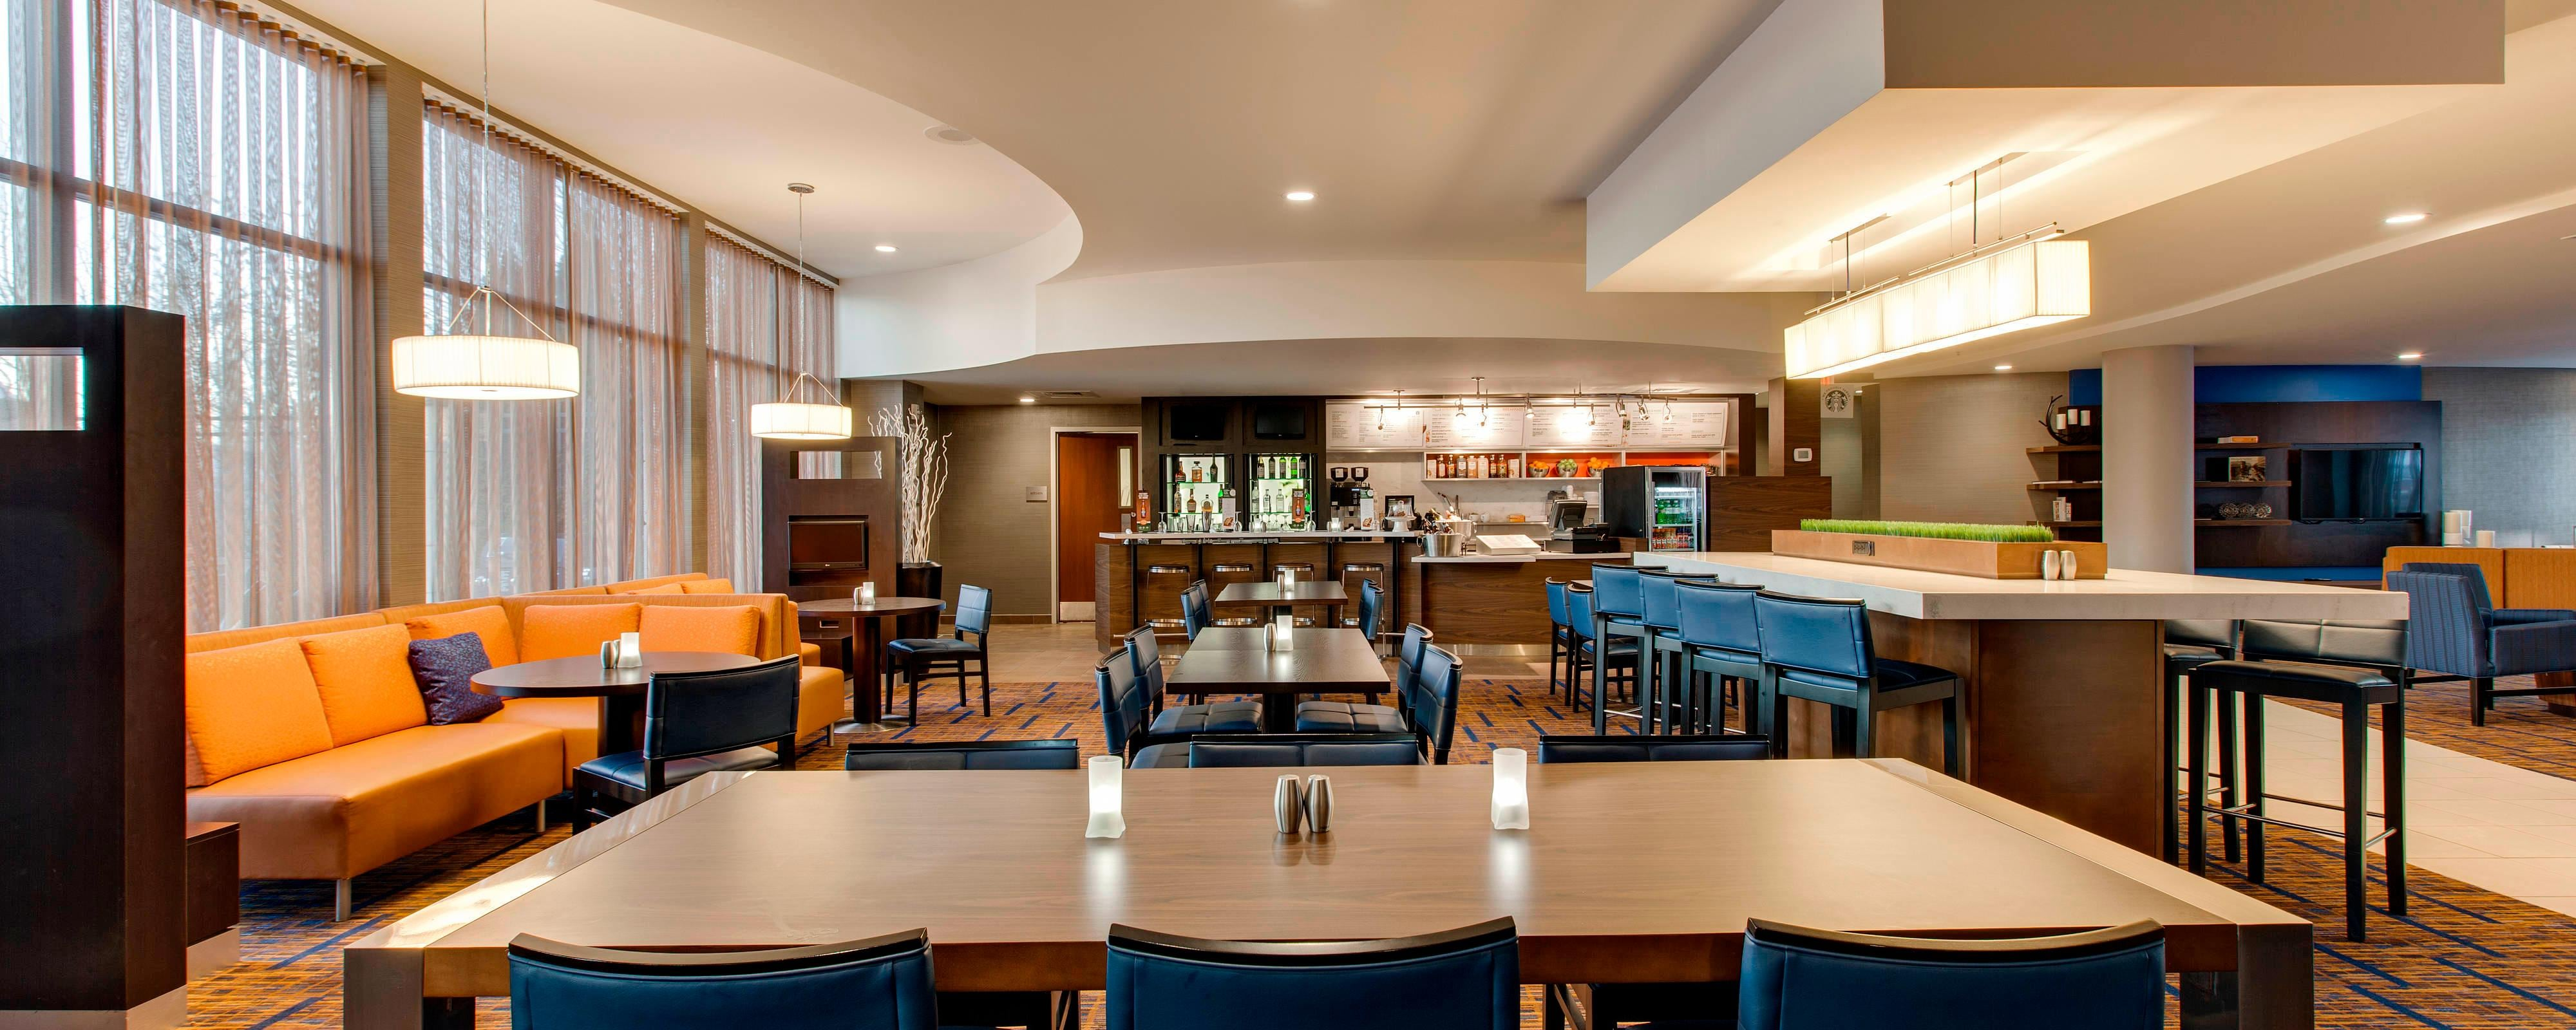 Award Winning Philadelphia Hotel | Courtyard Great Valley